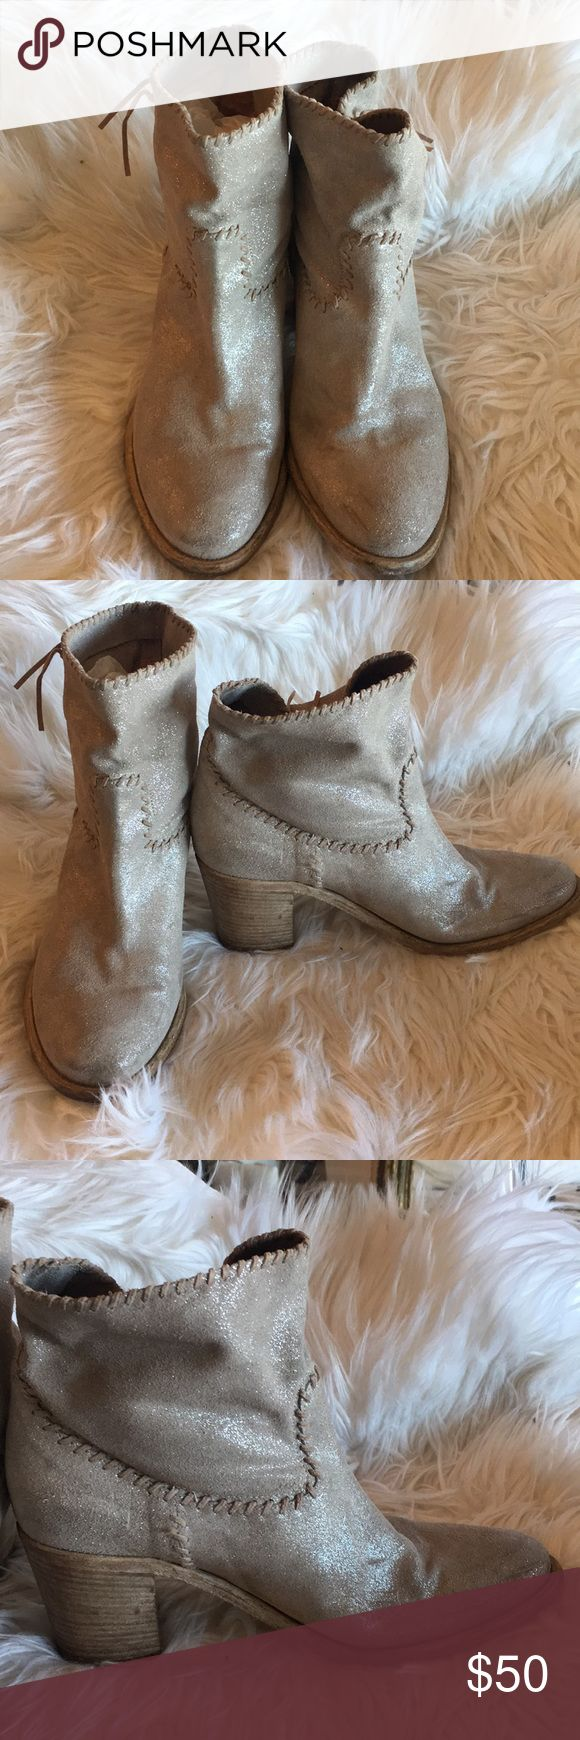 "Sparkly Grey Leather Boots. Size 39 by Casini Sparkly Grey Leather Boots. Size 39 by Casini. Purchased in Florence, Italy. Leather 3""H Casini Shoes Ankle Boots & Booties"